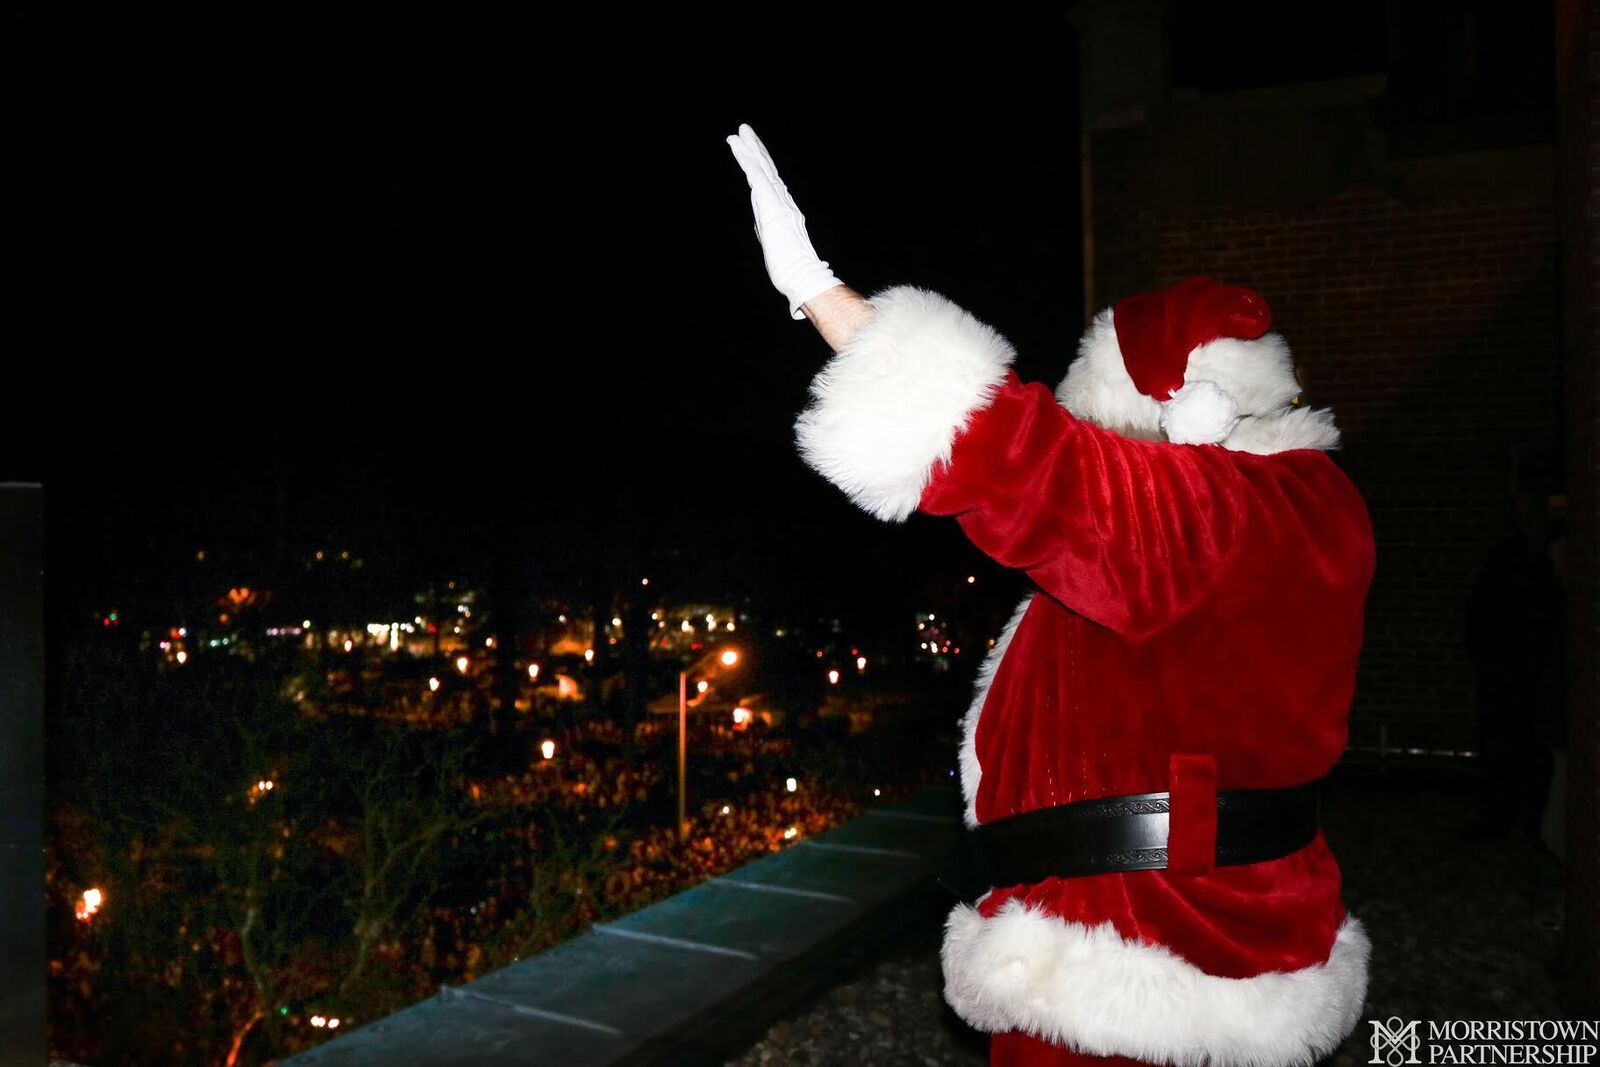 Christmas Events In Nj.Christmas Festival At The Morristown Green Morristown